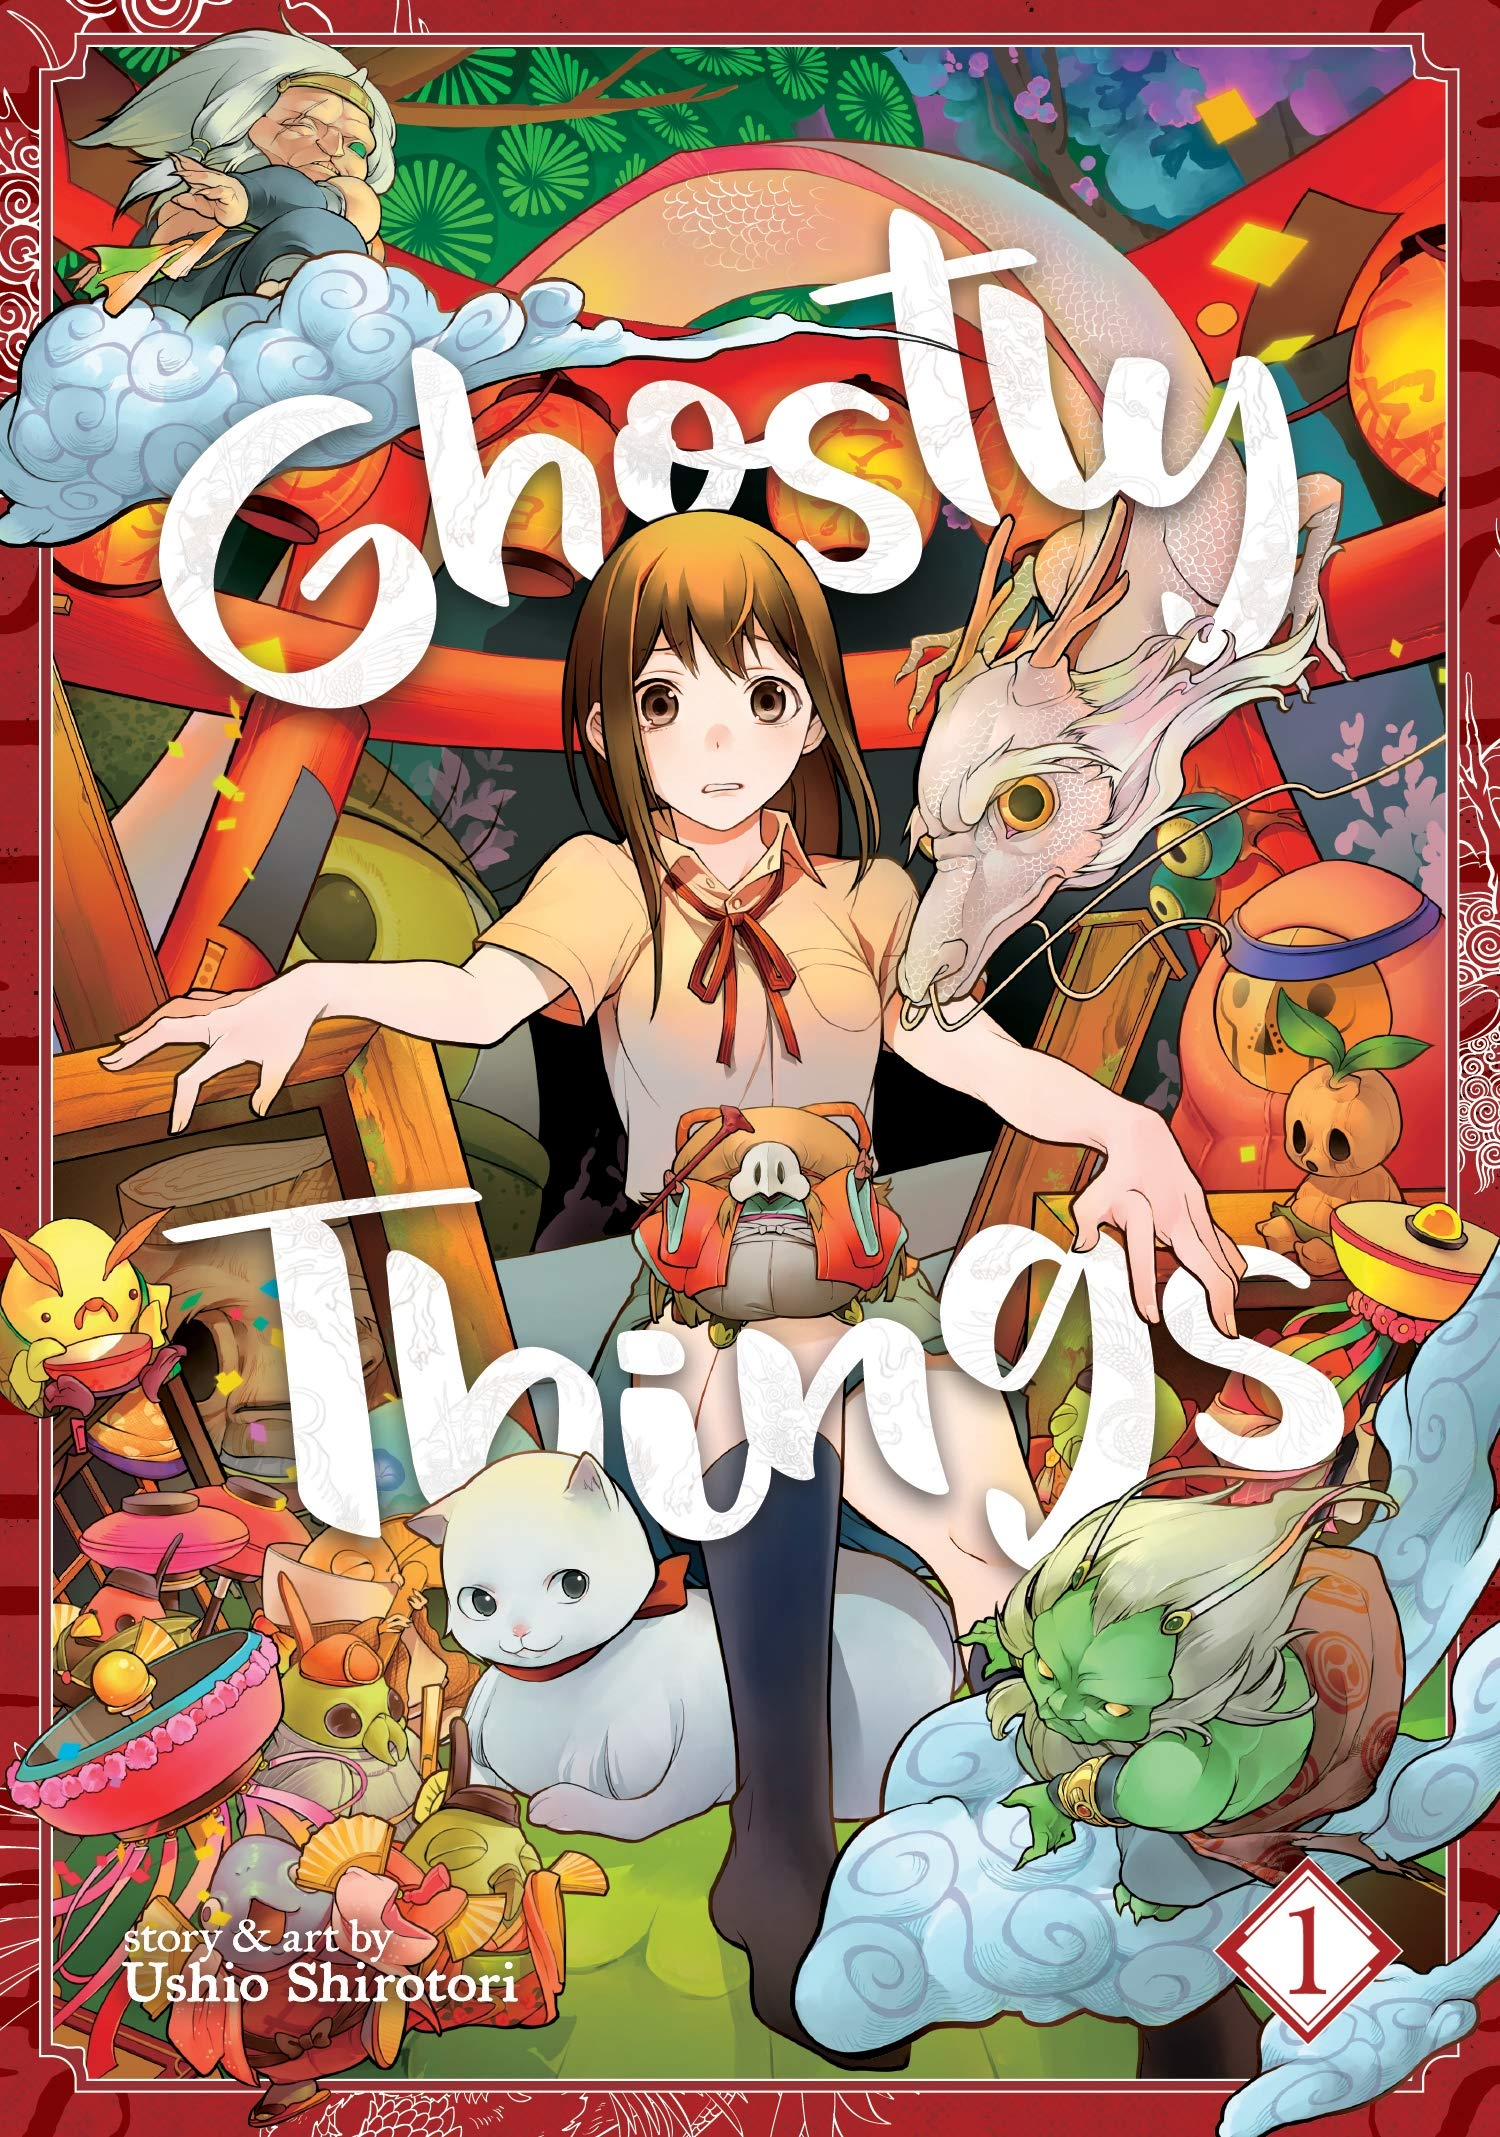 مانجا Ghostly Things تنتهي قريبًا..